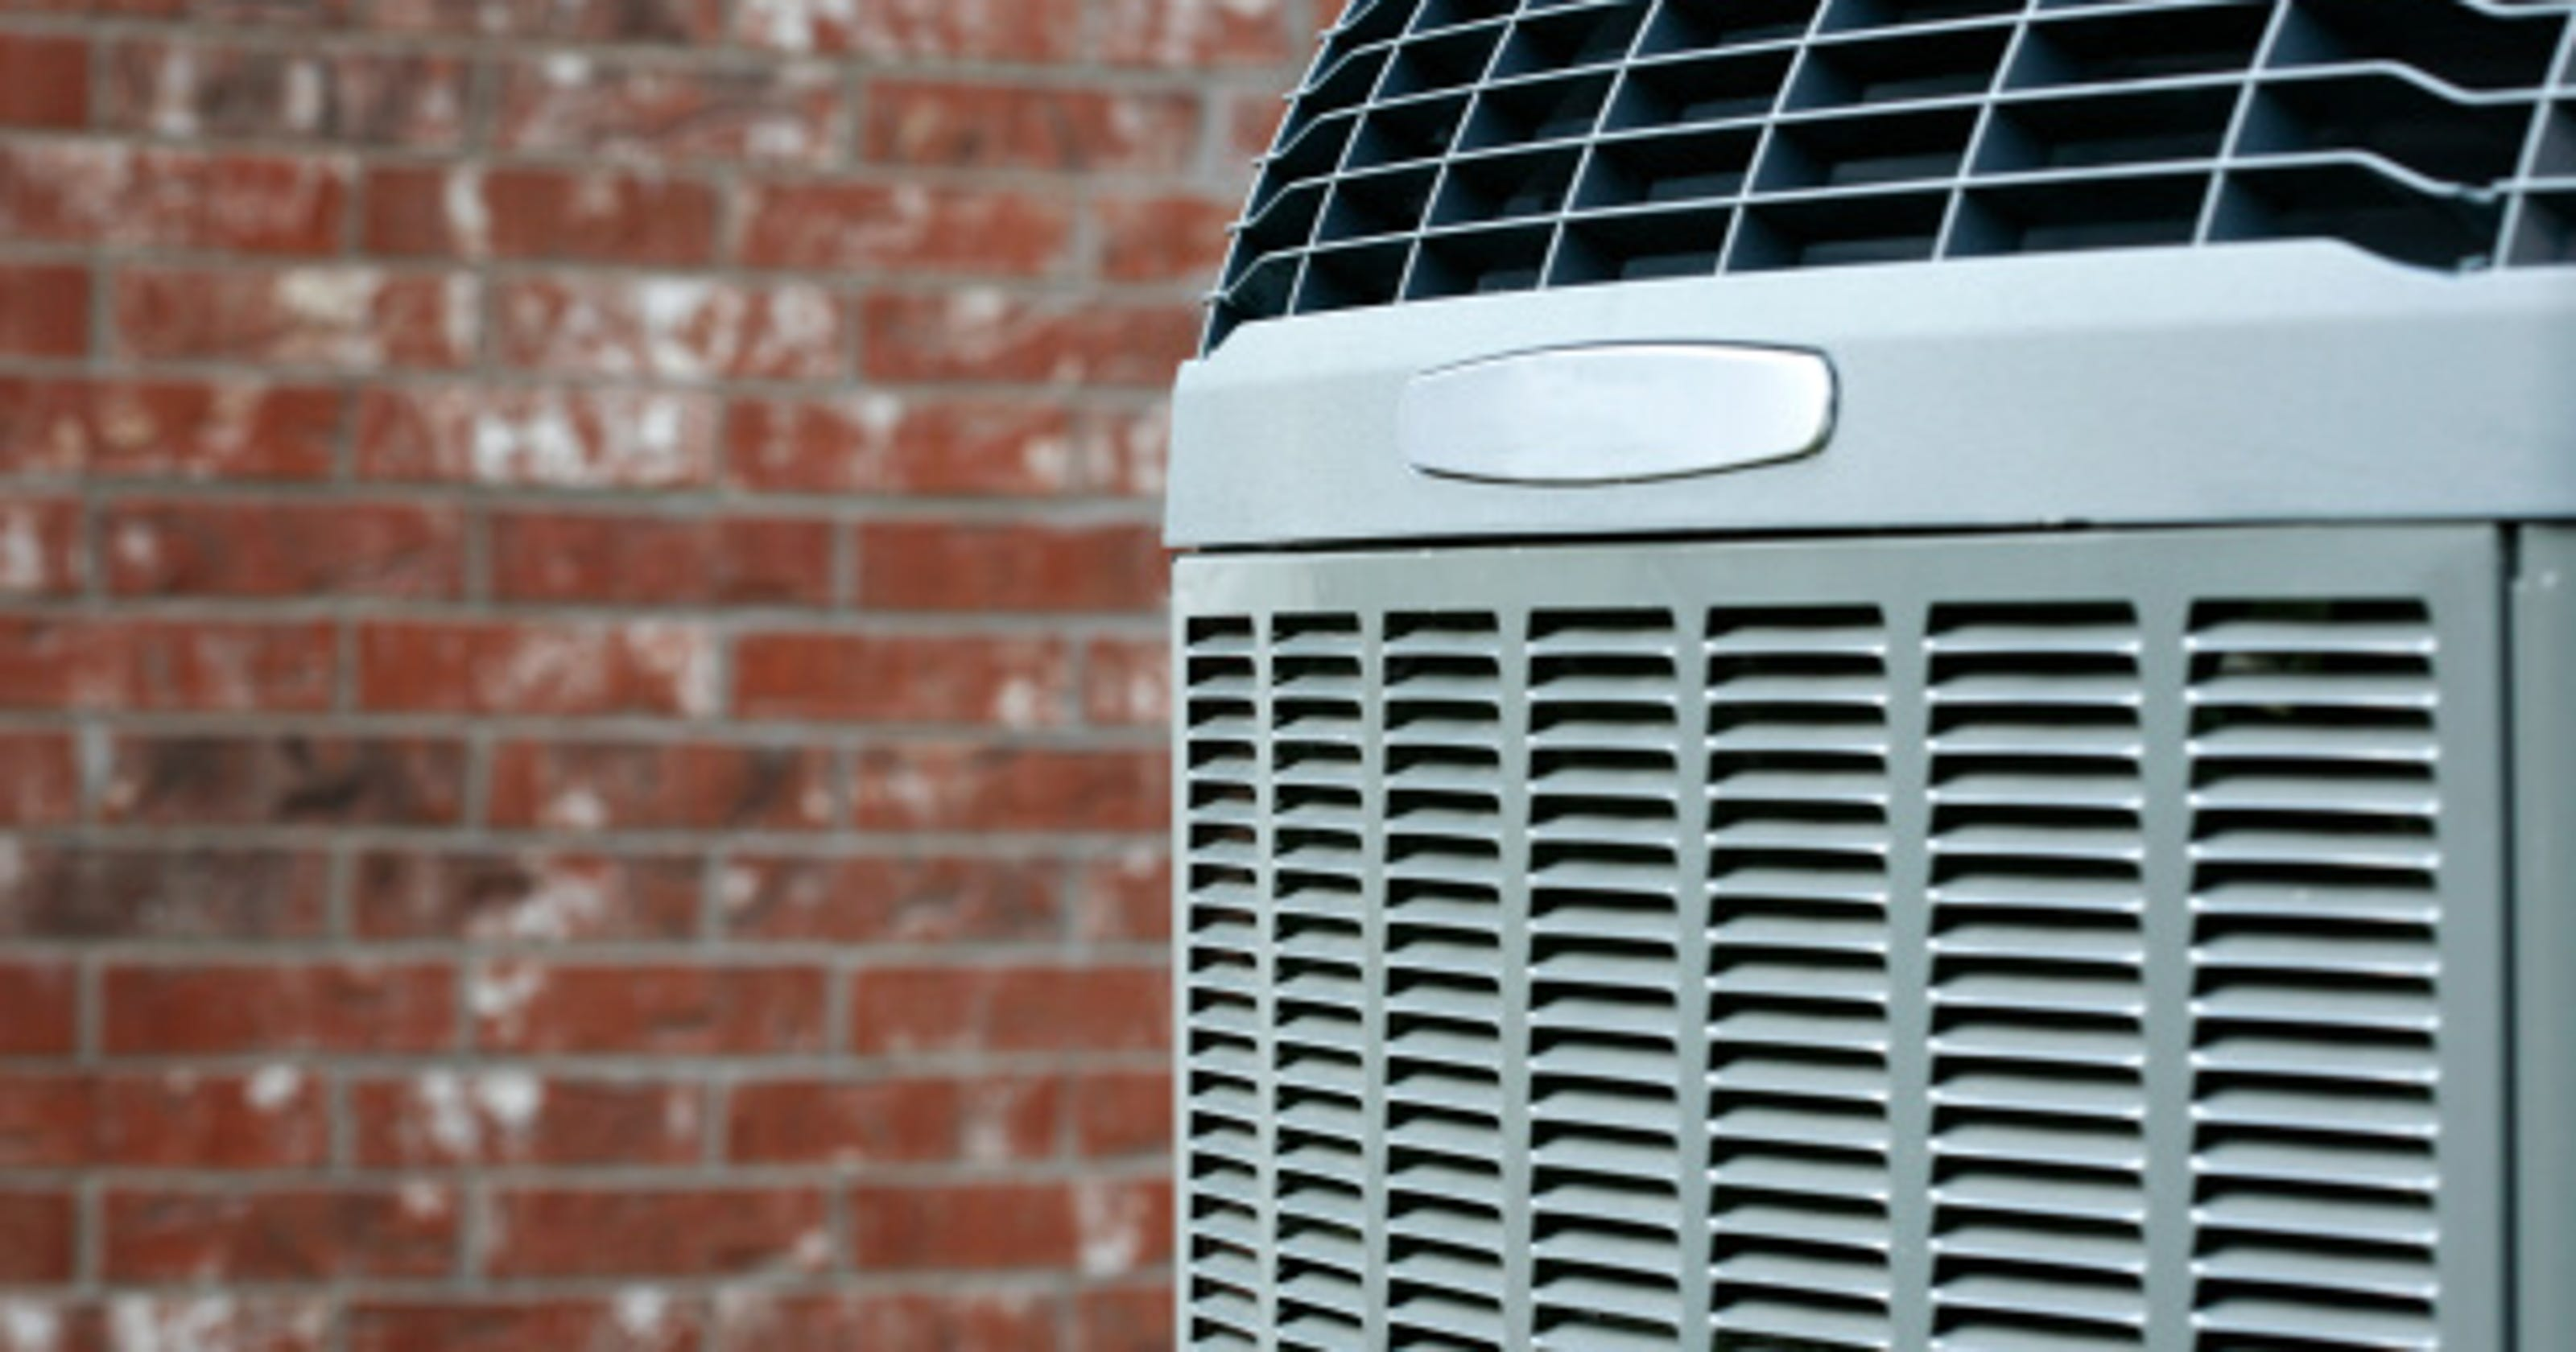 No A/C permit is not cool and leaves owner on the hook